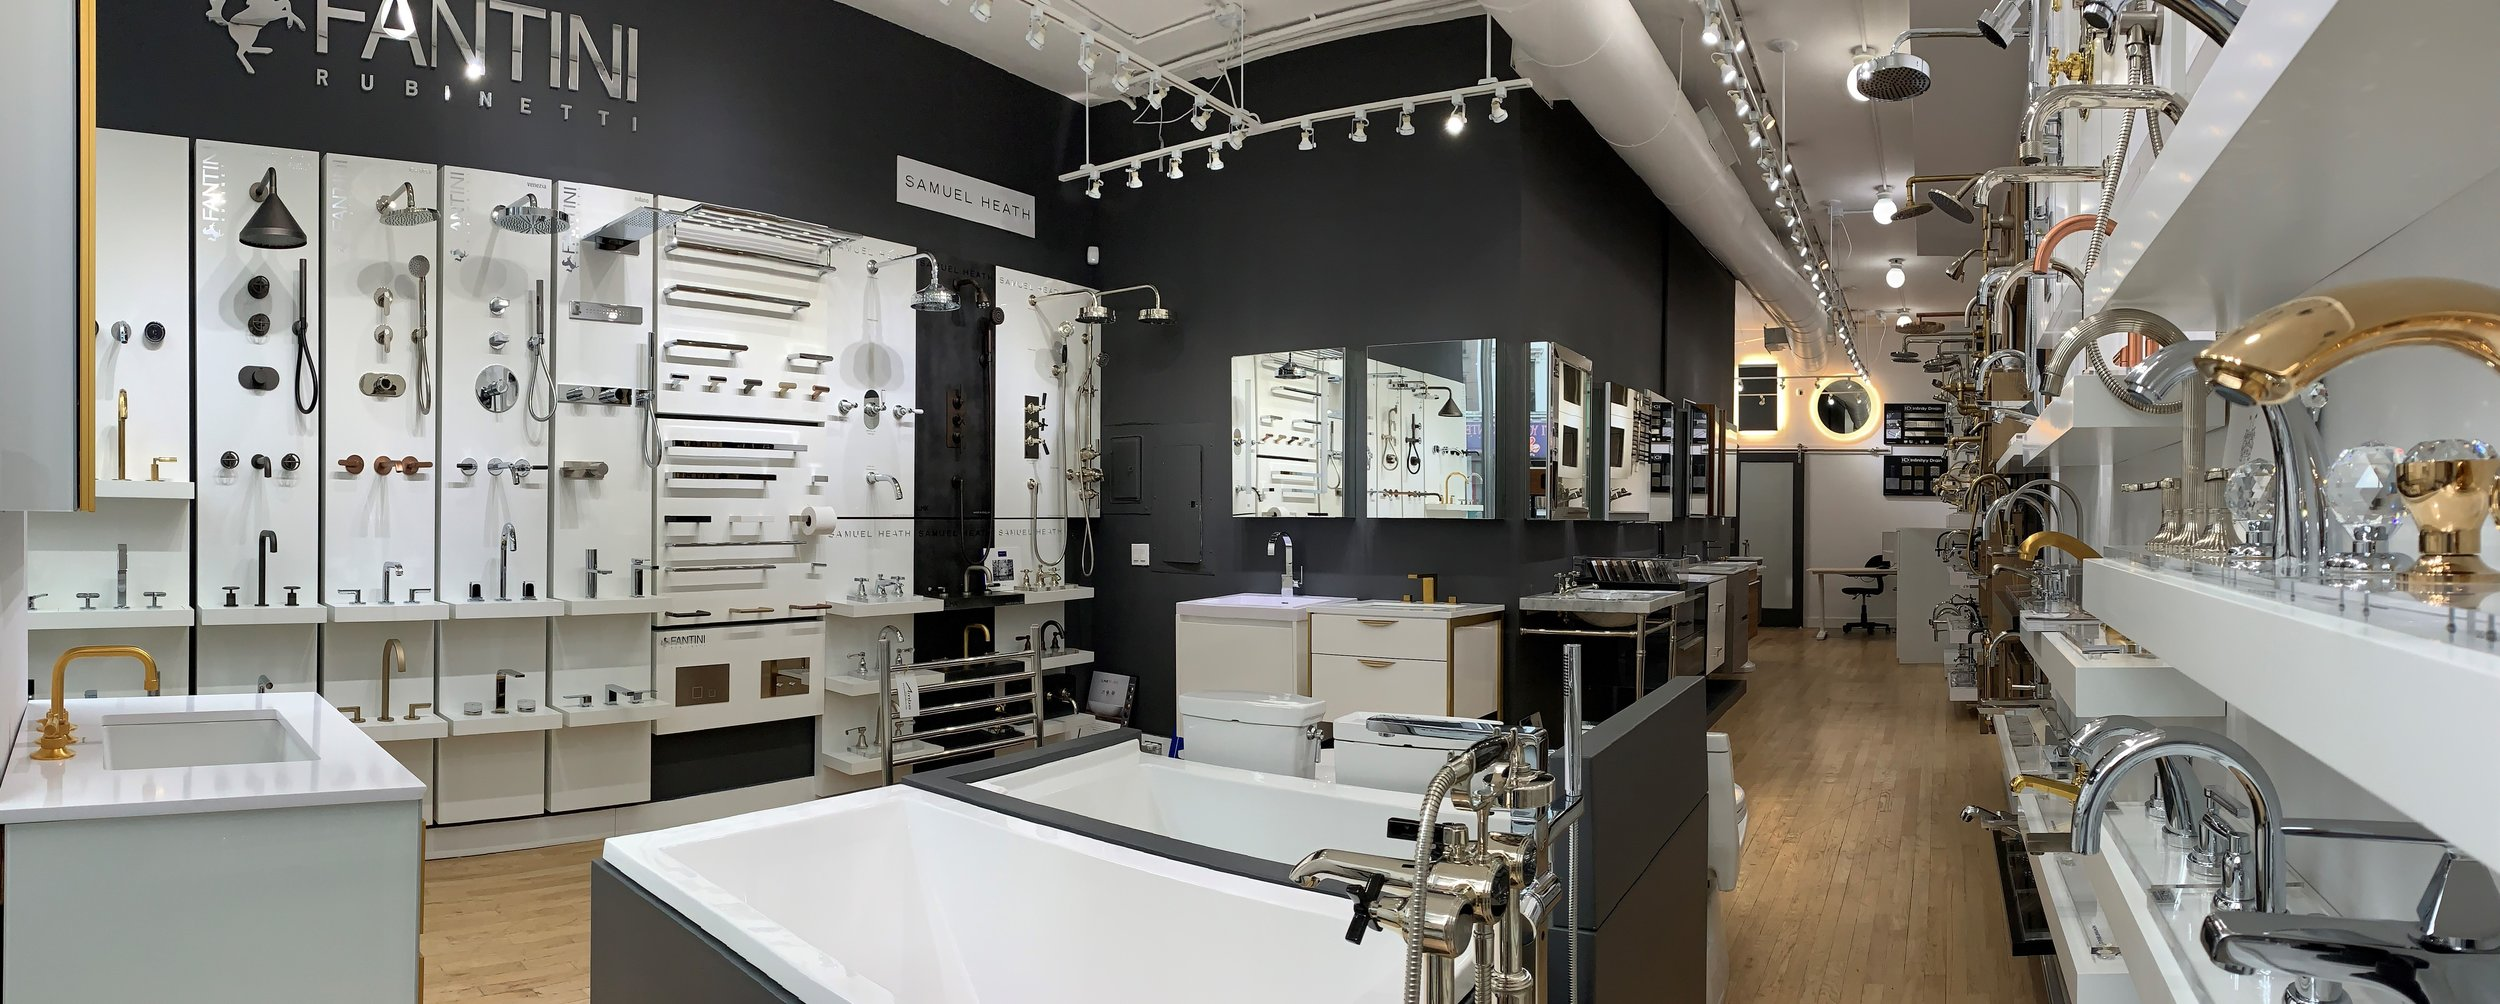 Elegance In Hardware And Bath